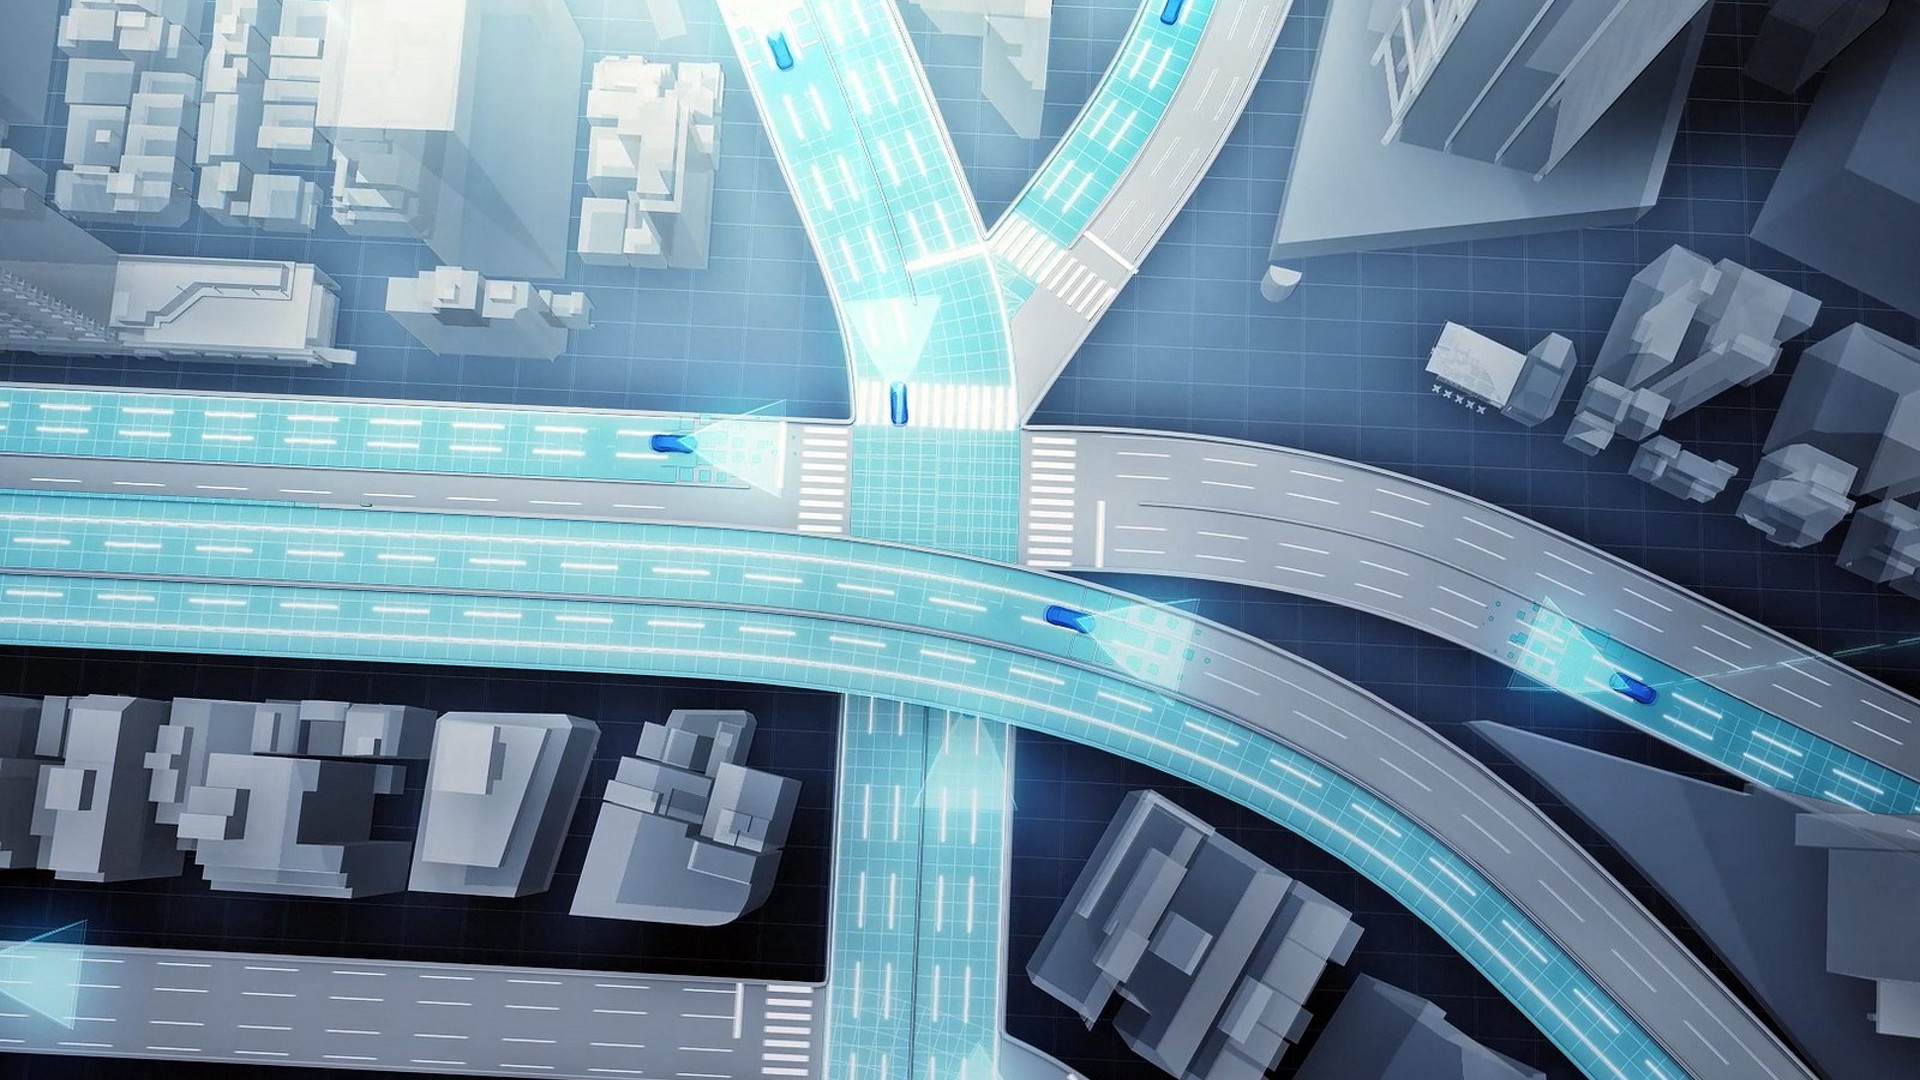 Toyota to unveil a new map generation system at CES [video]